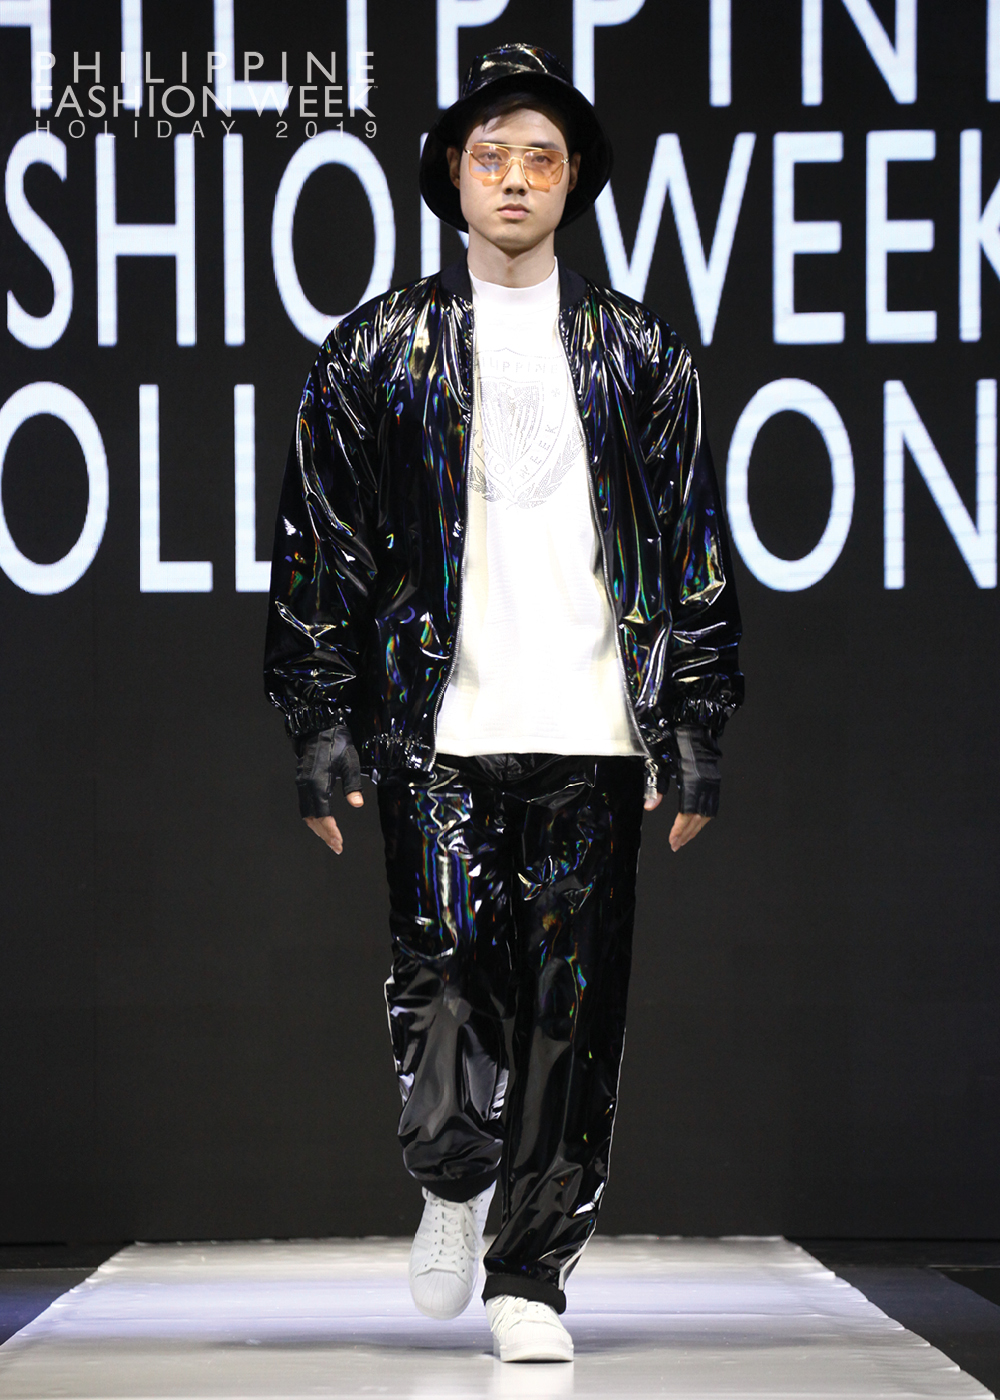 PhFW_collection show8.jpg